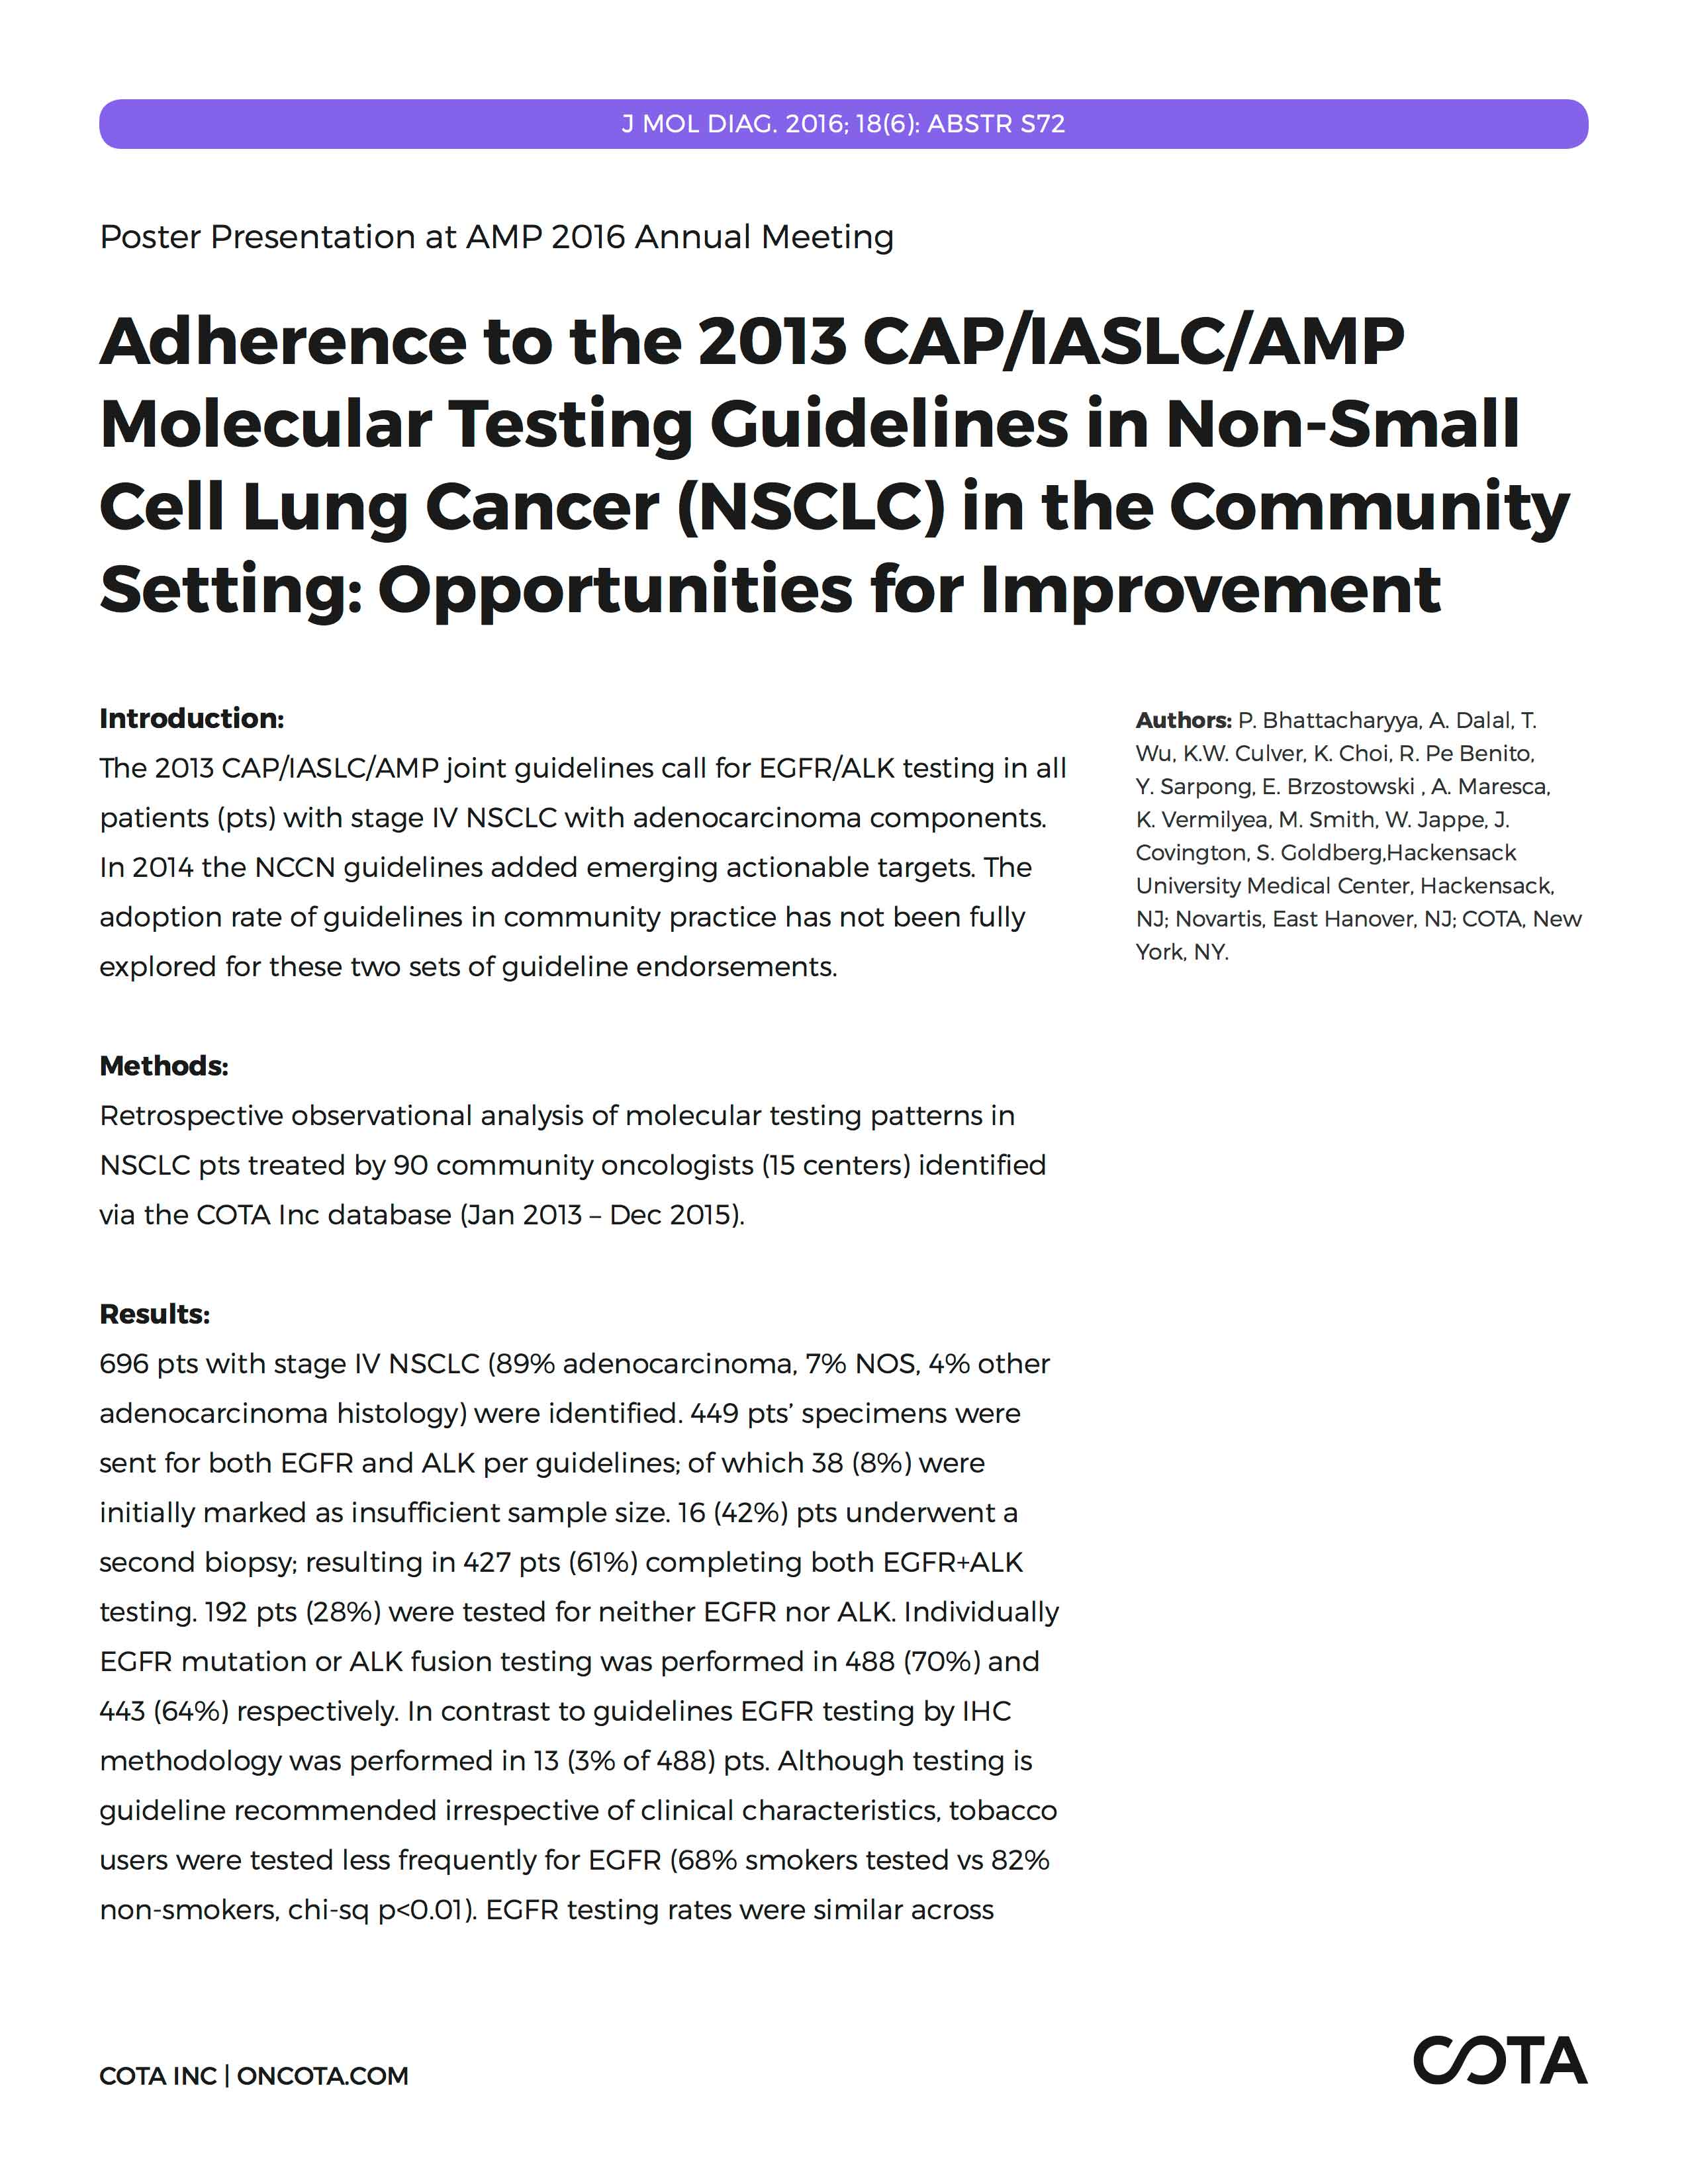 4e7fd950d17 Adherence to the 2013 CAP IASLC AMP Molecular Testing Guidelines in  Non-Small Cell Lung Cancer in the Community Setting  Opportunities for  Improvement